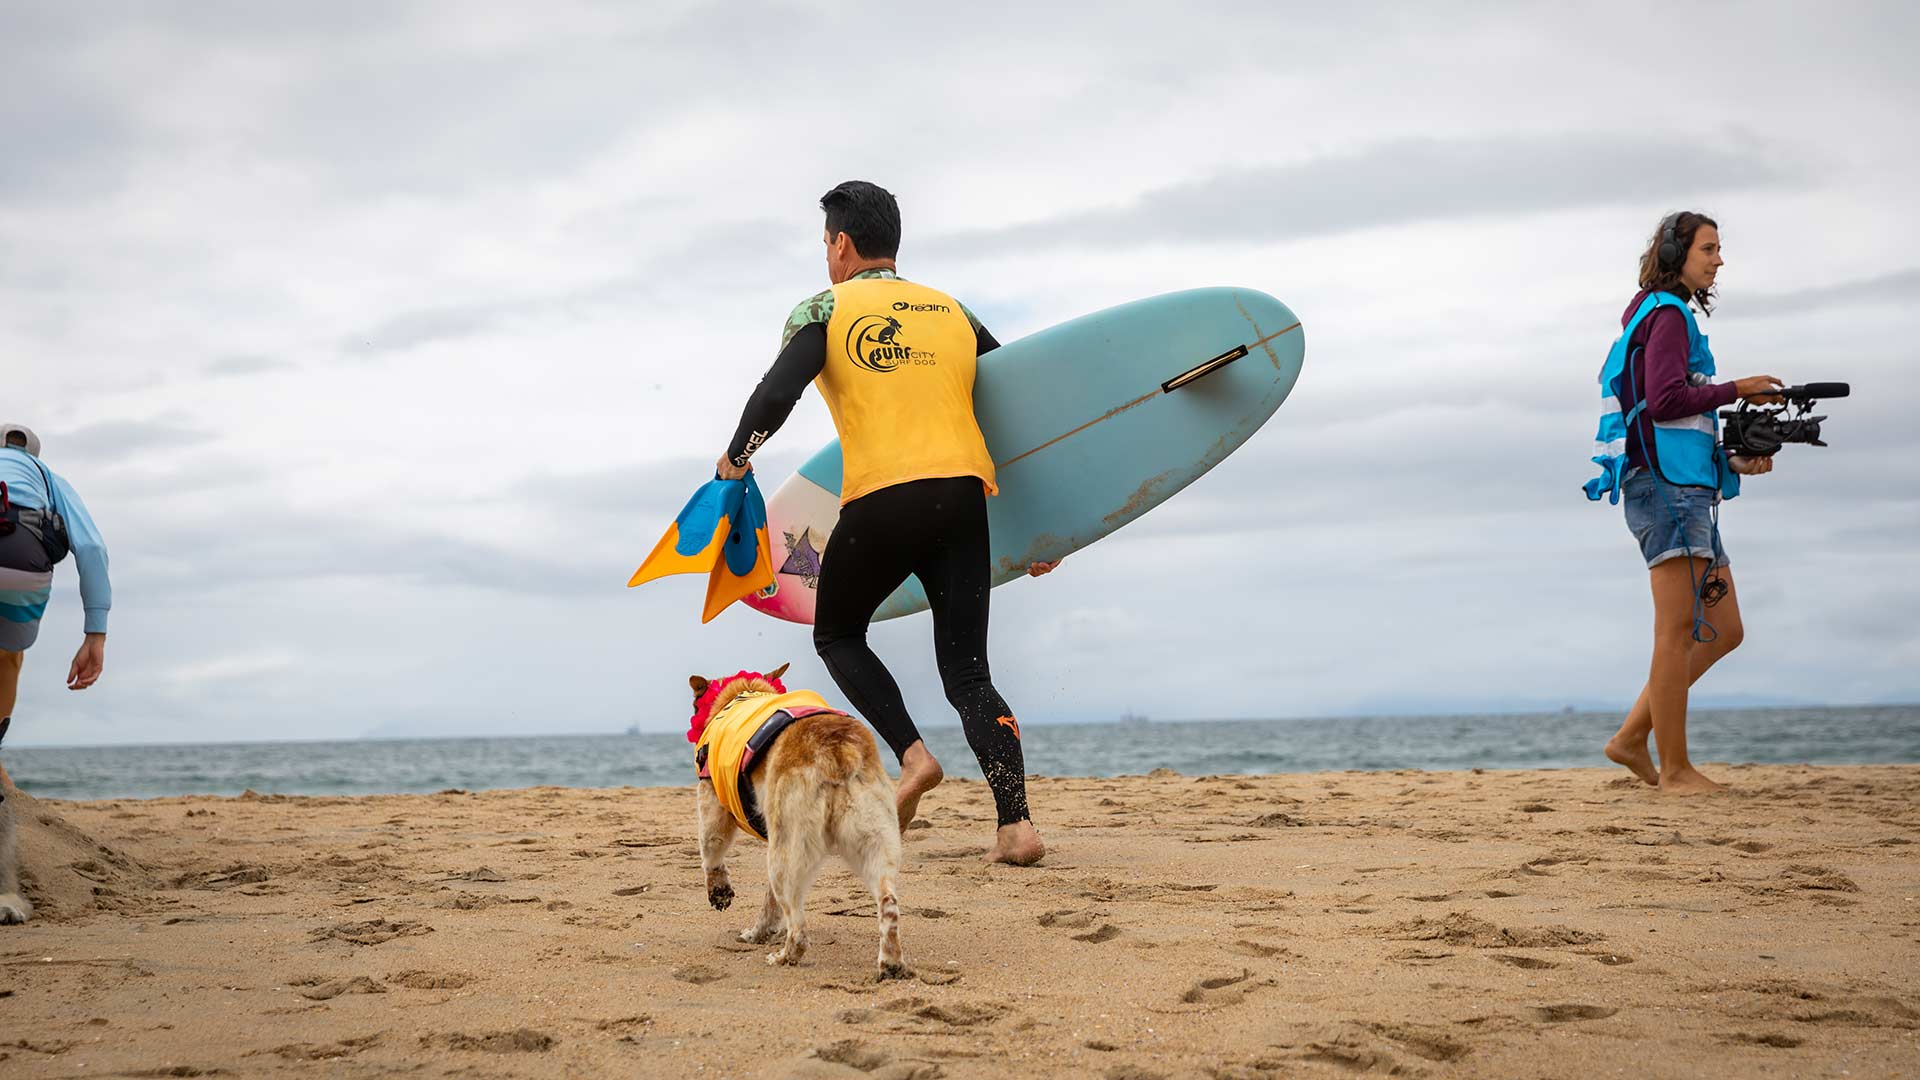 Surfer in yellow runs on the beach sand with his dog at his side